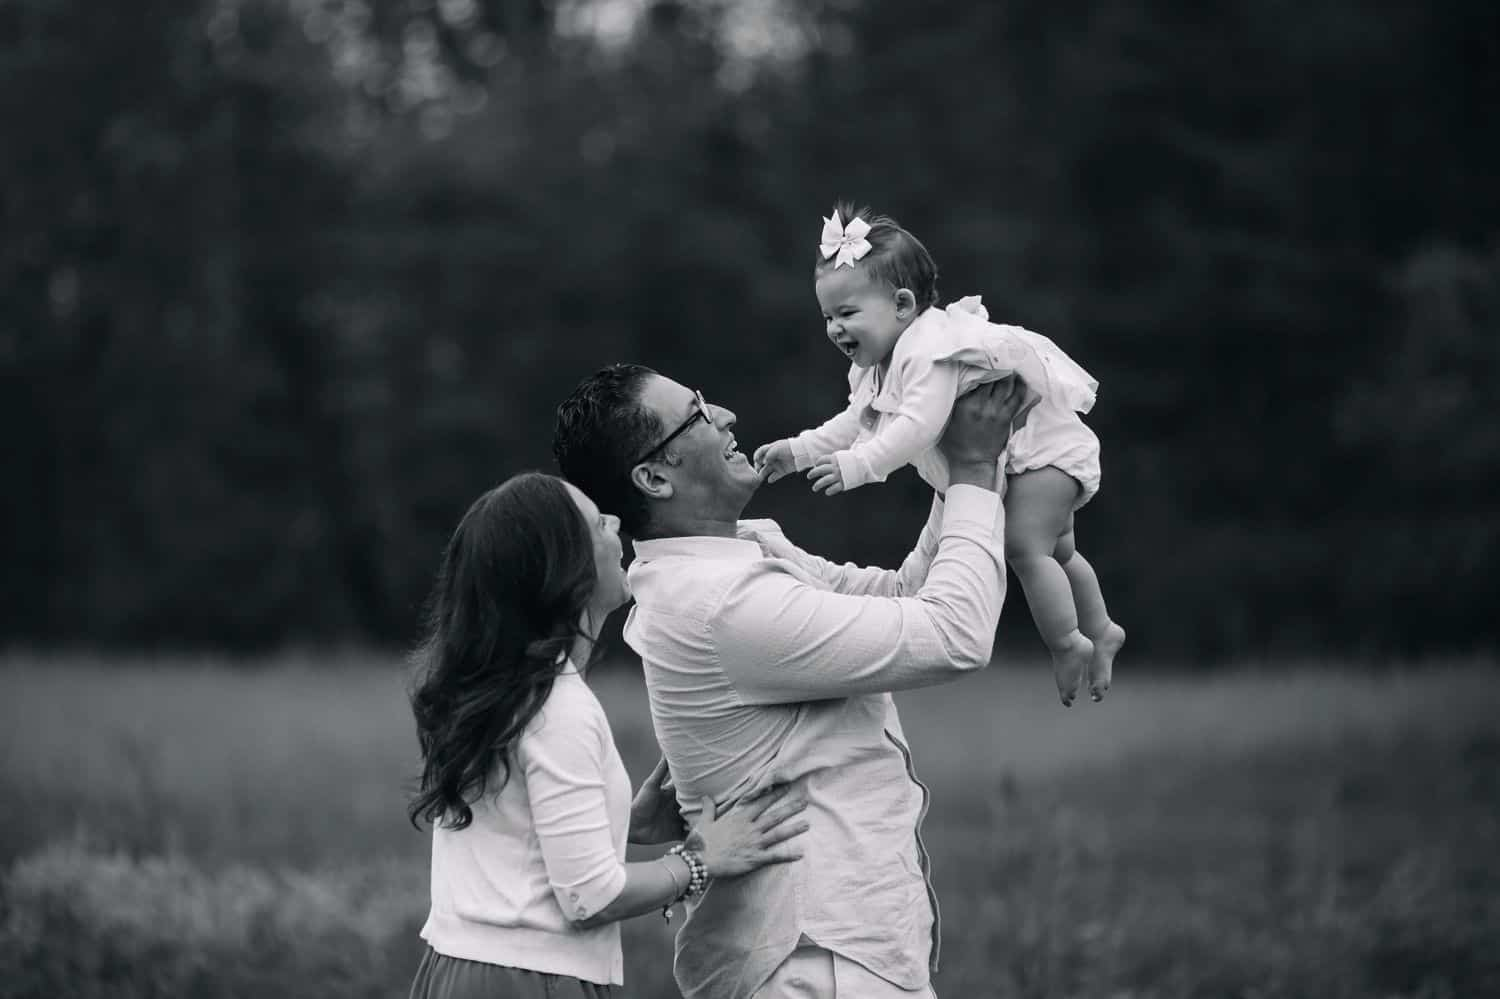 Black and white portrait of two parents lifting their baby daughter into the air